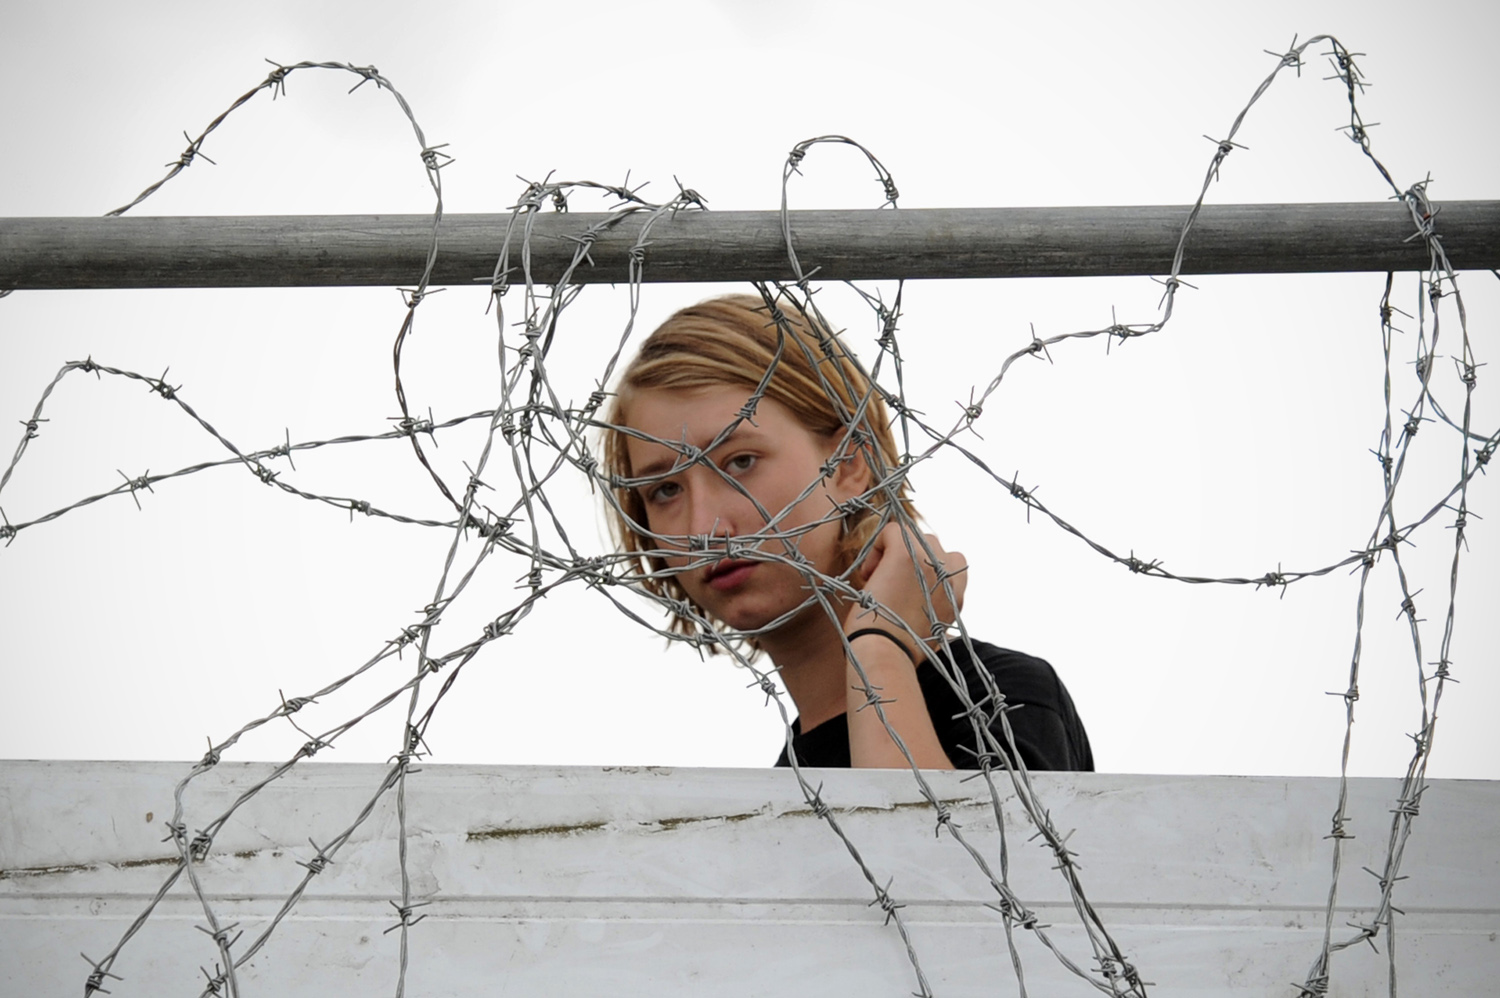 September 26, 2011. An activist looks through barbed wire at the traveler settlement at Dale Farm near Basildon, in south-east England, as resident Kathleen McCarthy addresses the press. Residents battling eviction from Britain's biggest illegal travelers' site won yet another temporary reprieve as a judge granted them an extension on their injunction. Bailiffs acting for the Basildon Council local authority had been set to evict the Irish travelers, but a series of last-ditch legal moves have so far prevented the site being cleared.